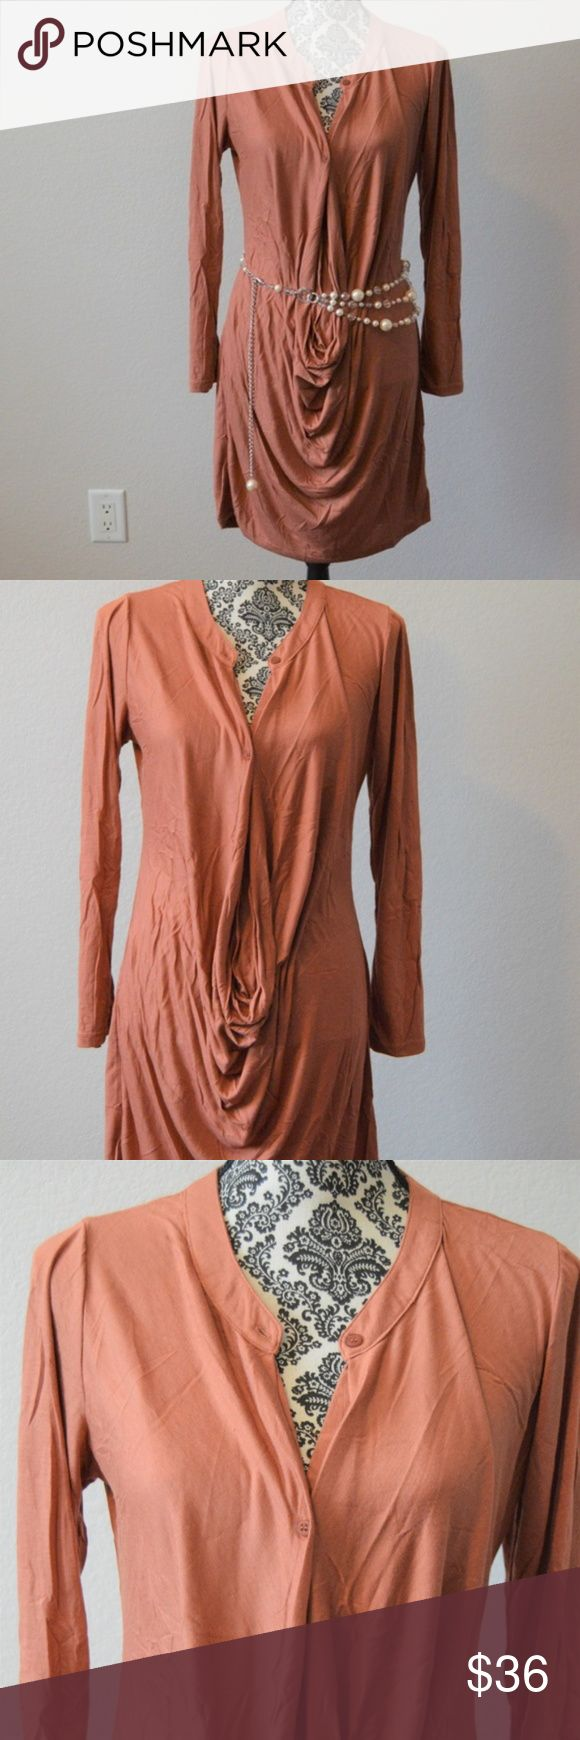 !!!NEW ARRIVALS!!! Long Sleeve Dress Blush Camel long sleeve, crew neckline that buttons down the front into a long cowl neck.  Dress hits right above the knee. 95% rayon/5% spandex. Dresses Long Sleeve